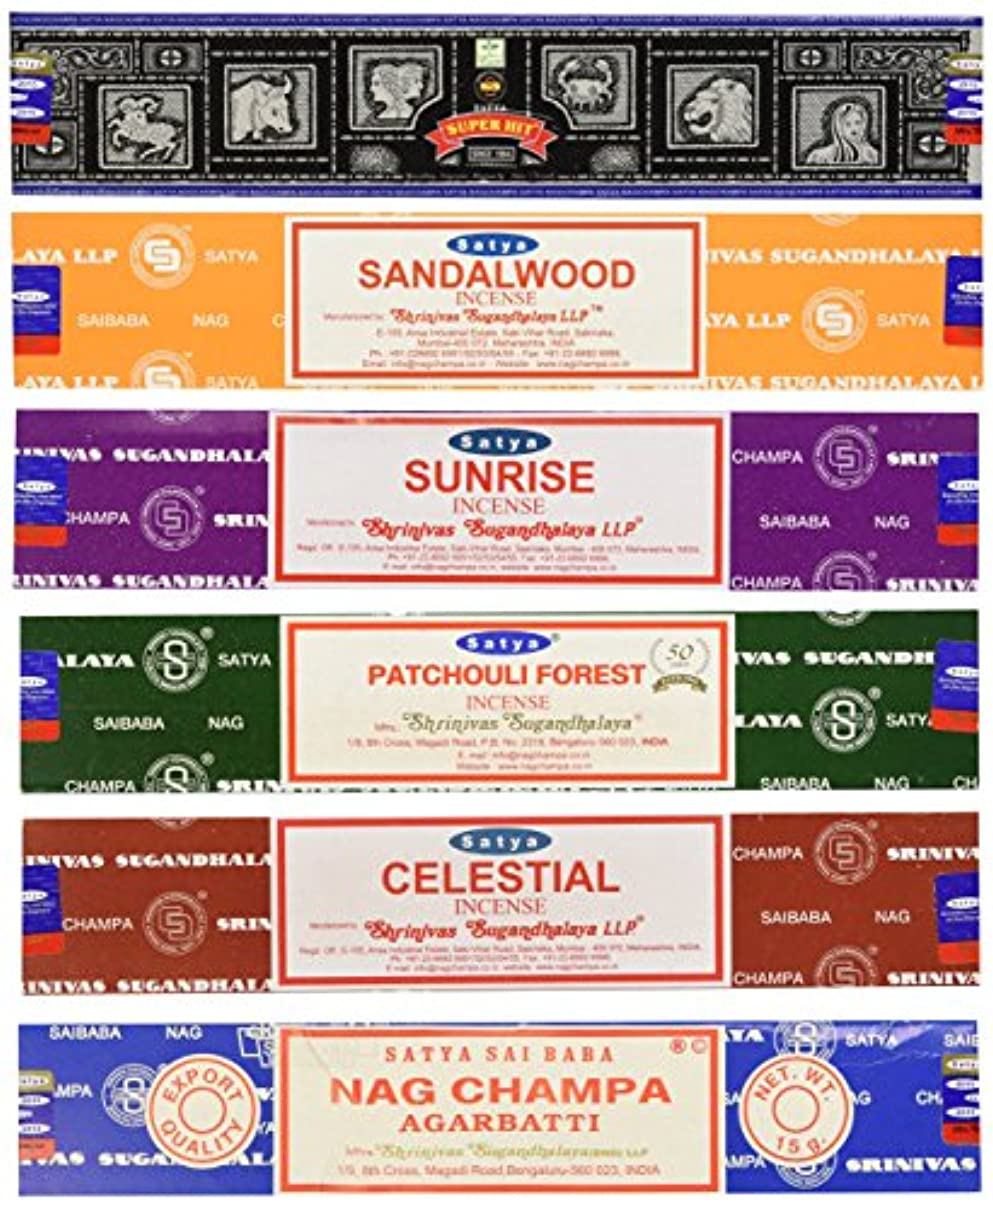 アフリカせせらぎアプライアンスSet of 6 Nag Champa Sunrise Sandalwood Patchouli Celestial Super Hit by Satya